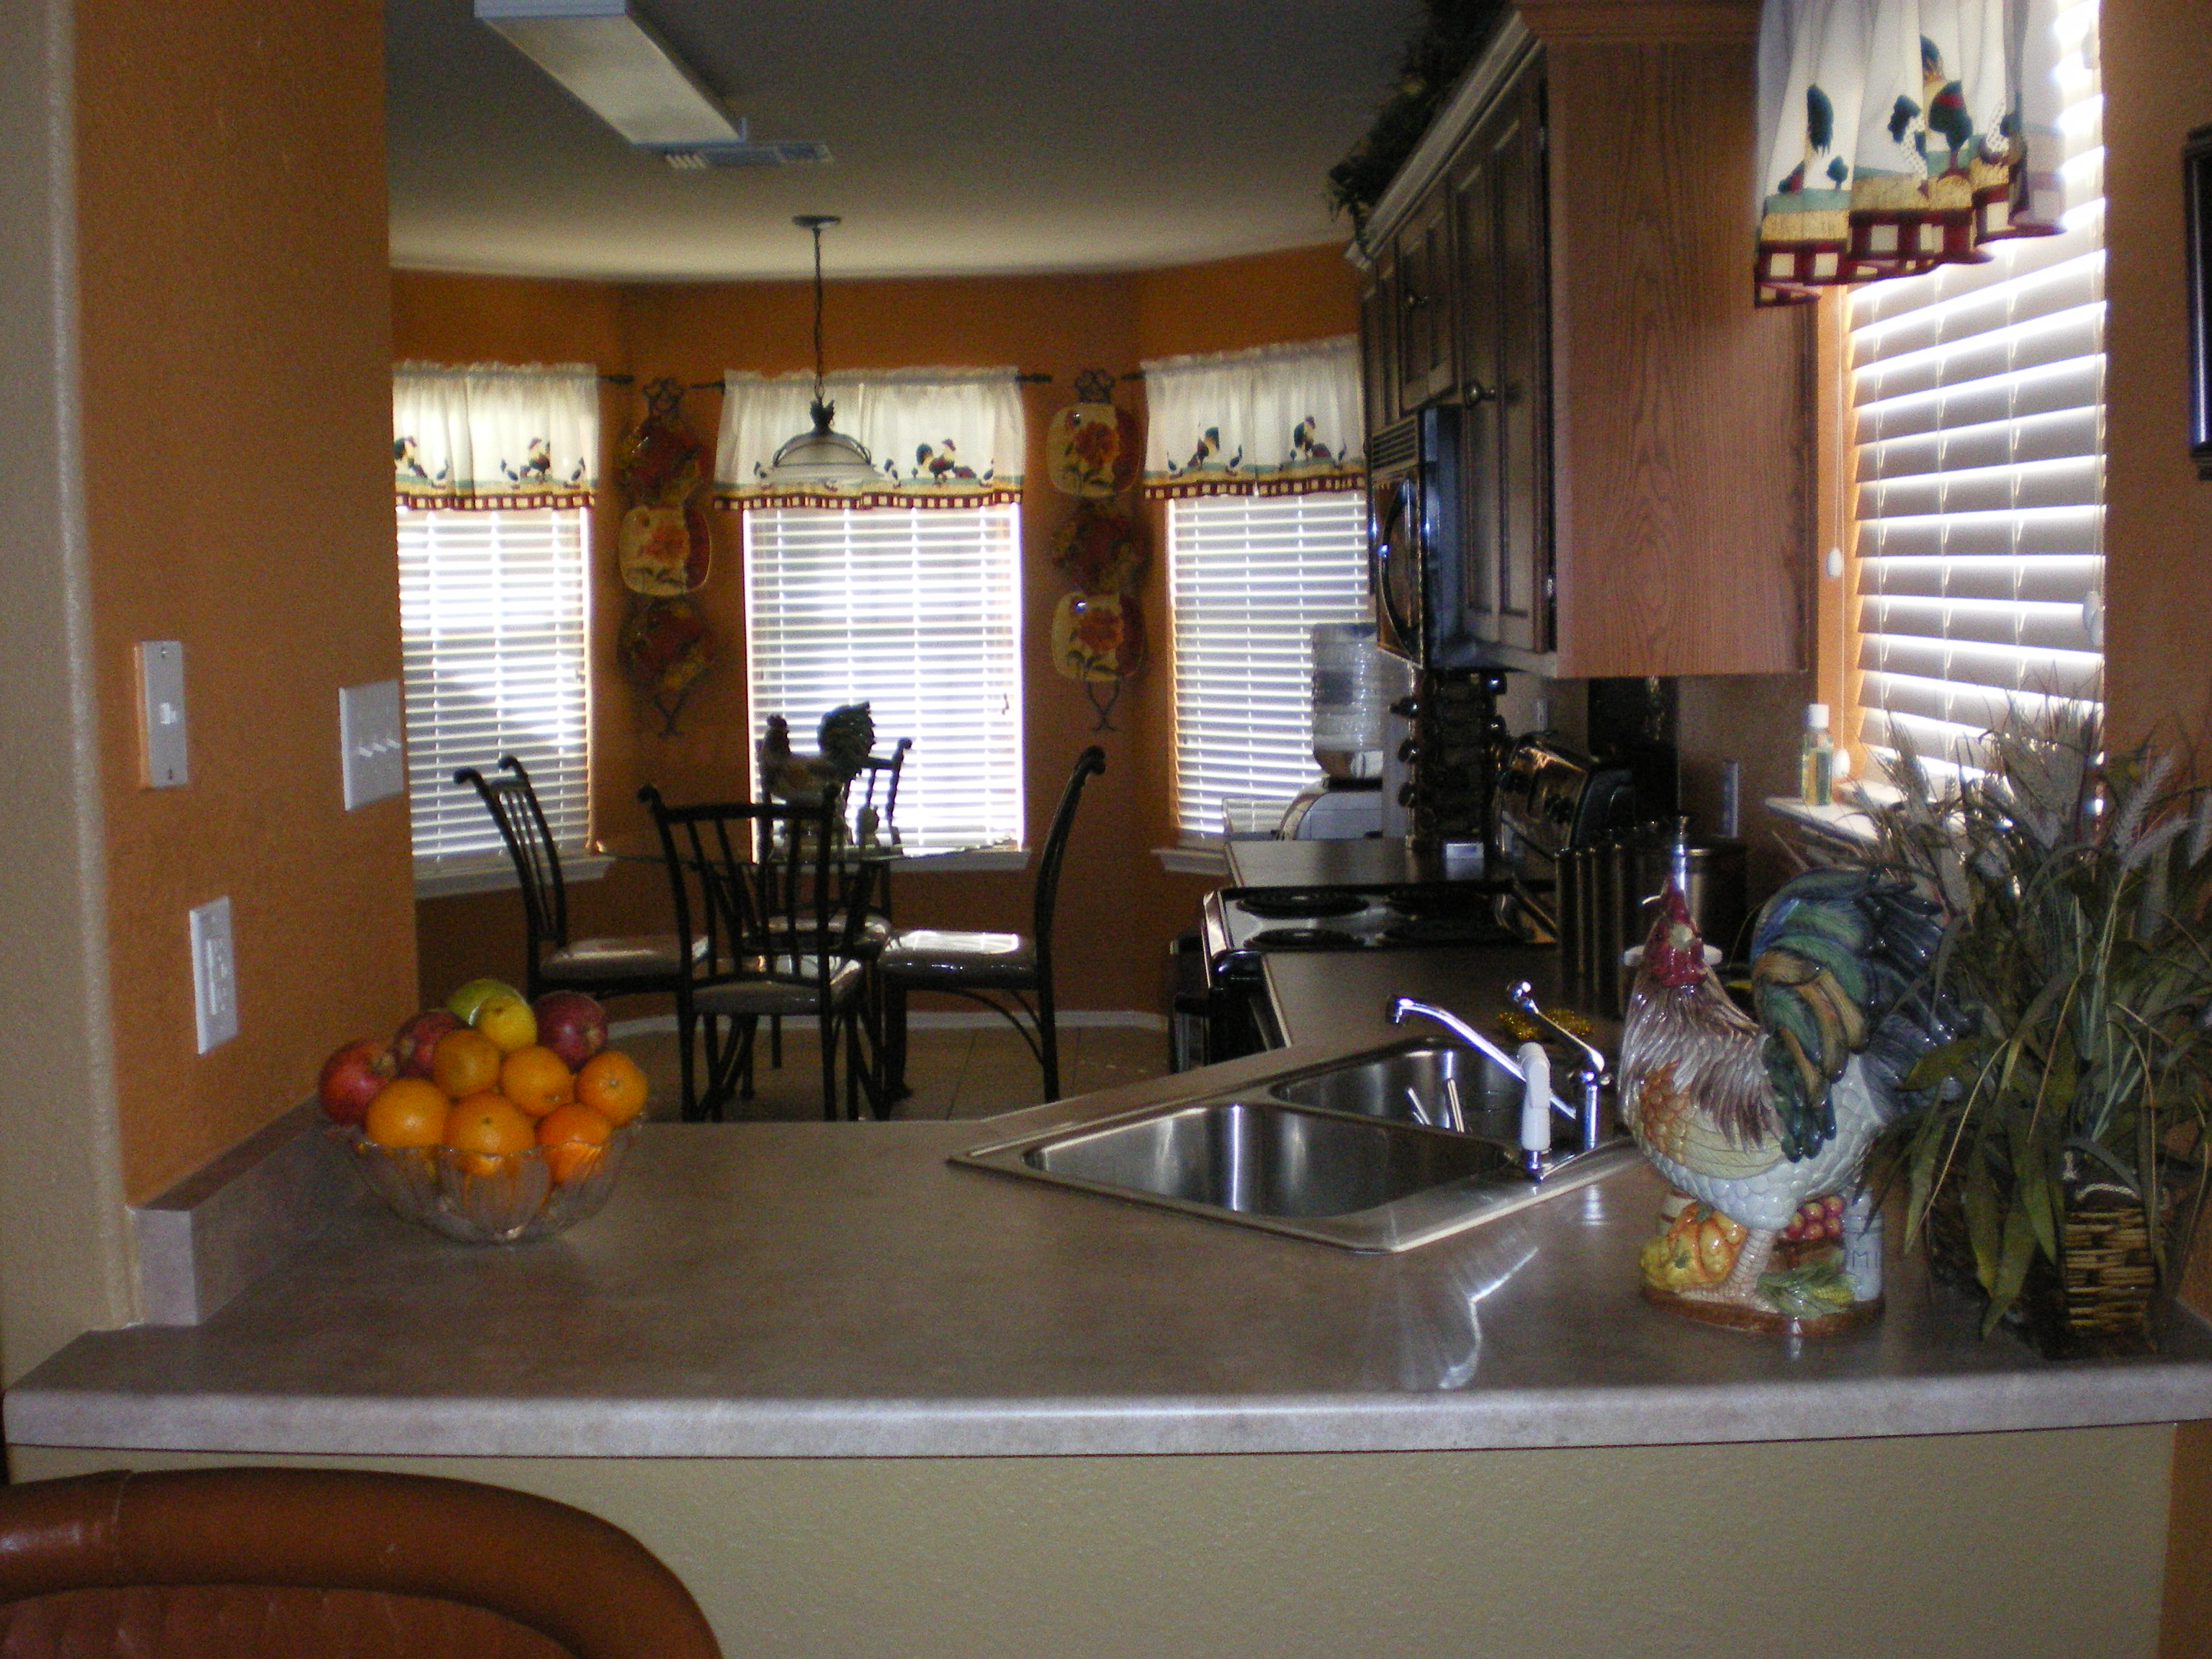 For Sale By Owner home, FSBO real estate sold by owners in San Antonio, Texas (TX) at ForSaleByOwnerBuyersGuide.com